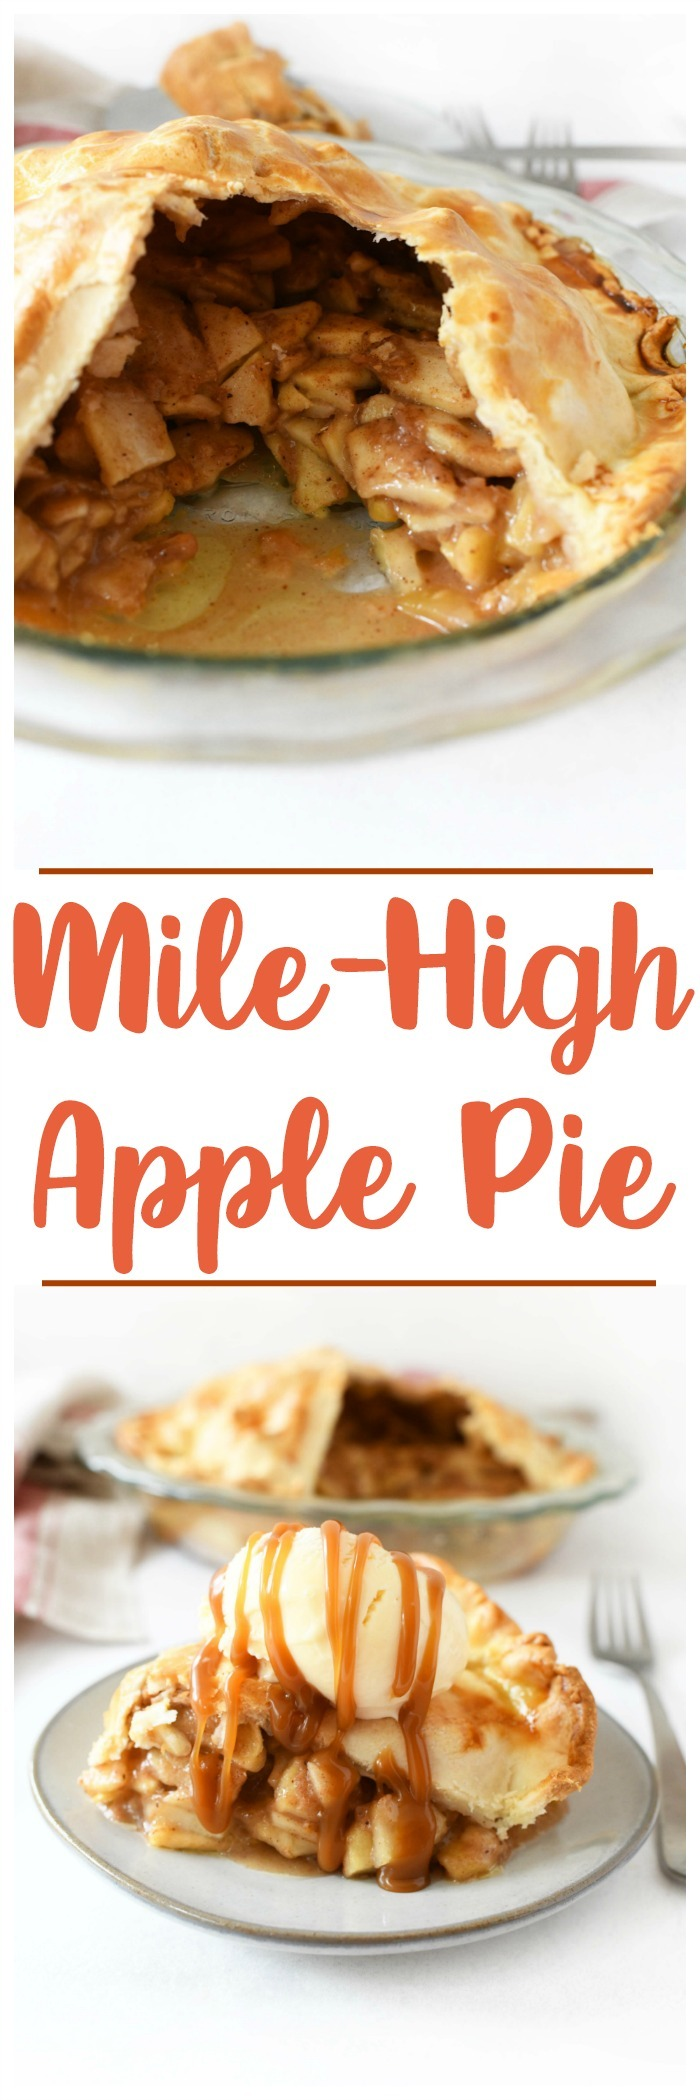 Easy Apple Pie Using Store-Bought Crust